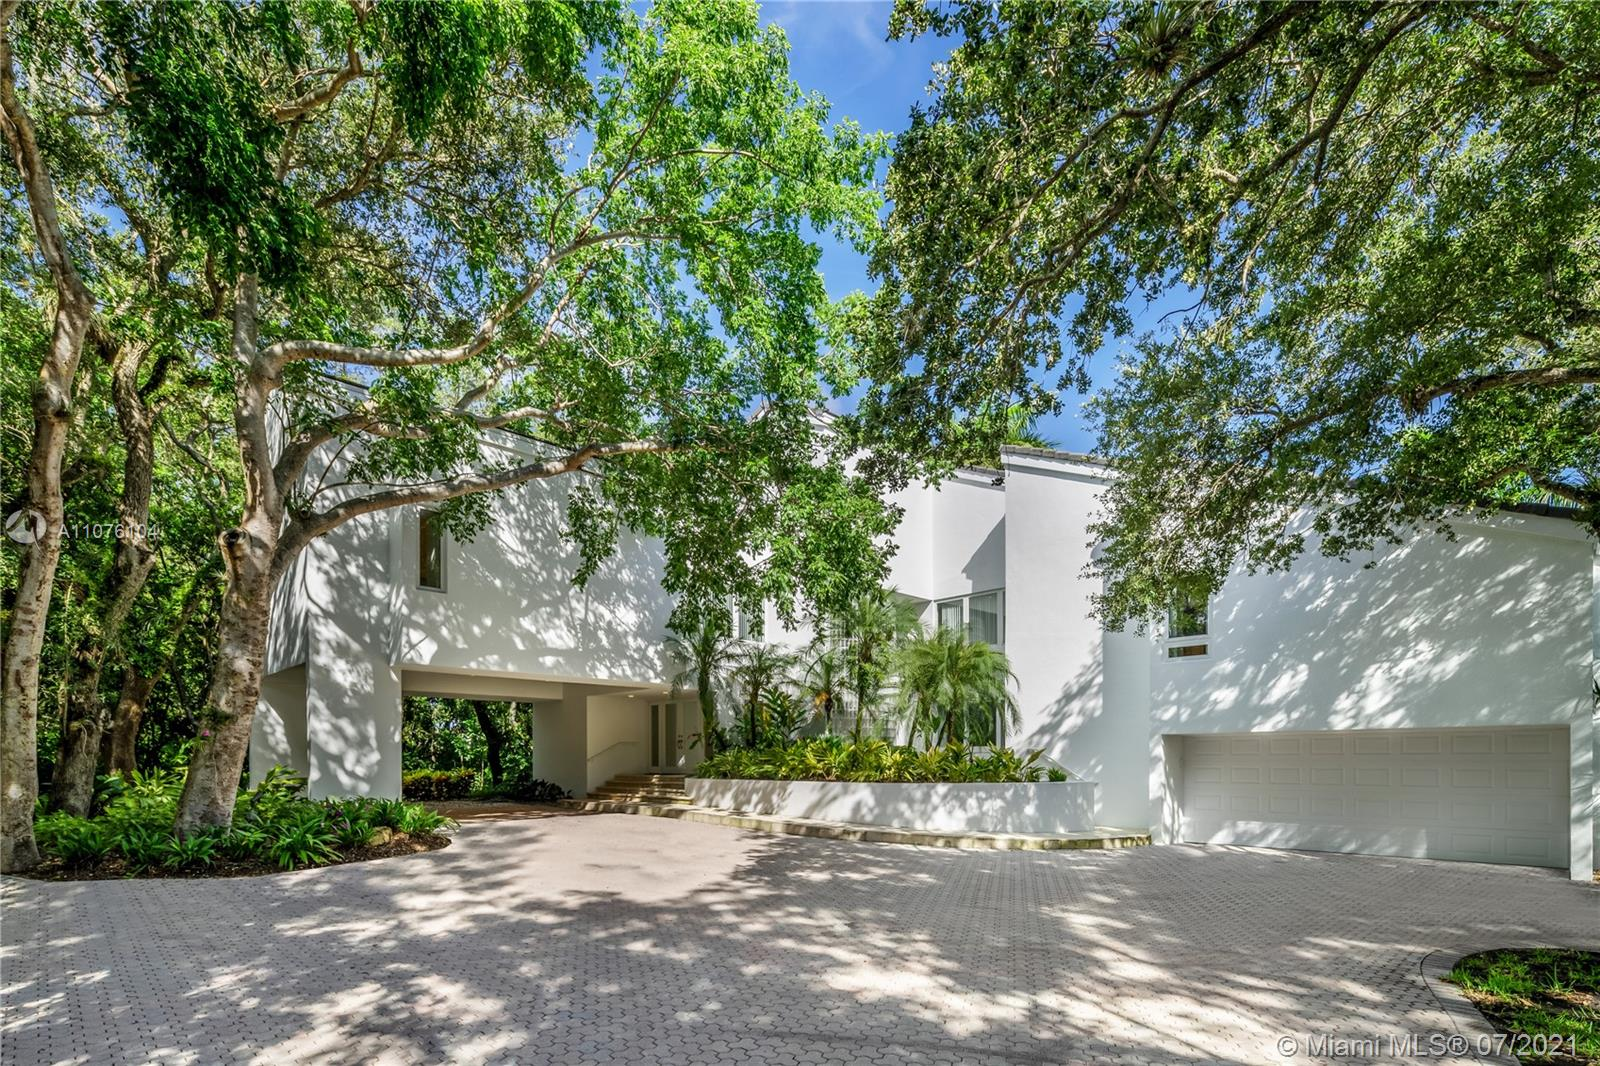 A contemporary 5,297 sq ft house sits on an impressive 1.4 acres filled with lush gardens and large oak trees. This bright, freshly-painted and spacious home offers high ceilings, impact windows and doors throughout with 5 bedrooms and 6.5 bathrooms. The perfect split plan with all bedrooms located on the 2nd floor. The two large decks and large, beautiful pool make this house the perfect home for entertaining. Roof is 2015. Home is part of the Gables Estates Club and membership approval is a pre-requisite to purchase.